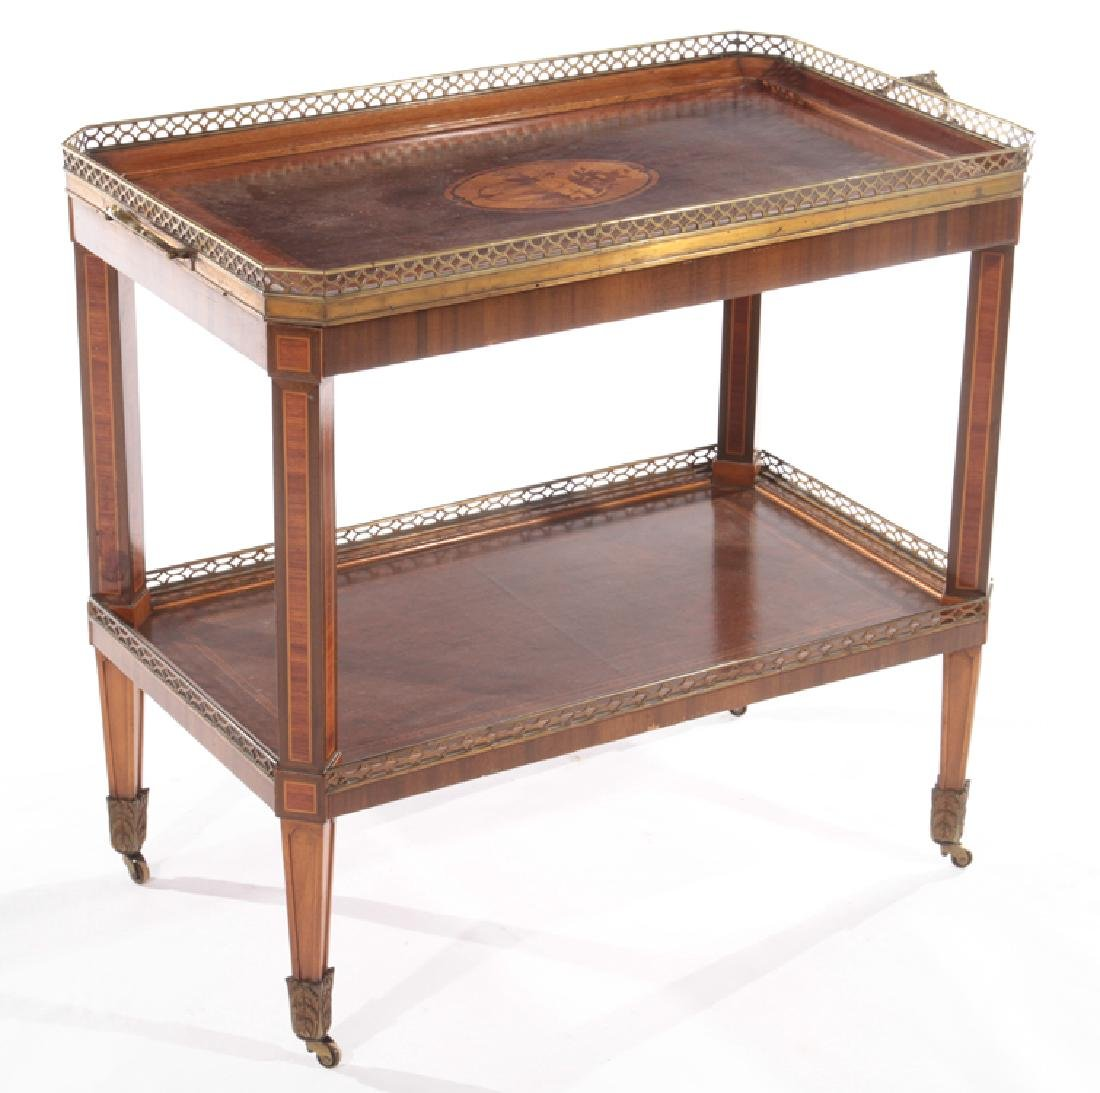 BRONZE MOUNTED INLAID MAHOGANY DRINKS TABLE 1910